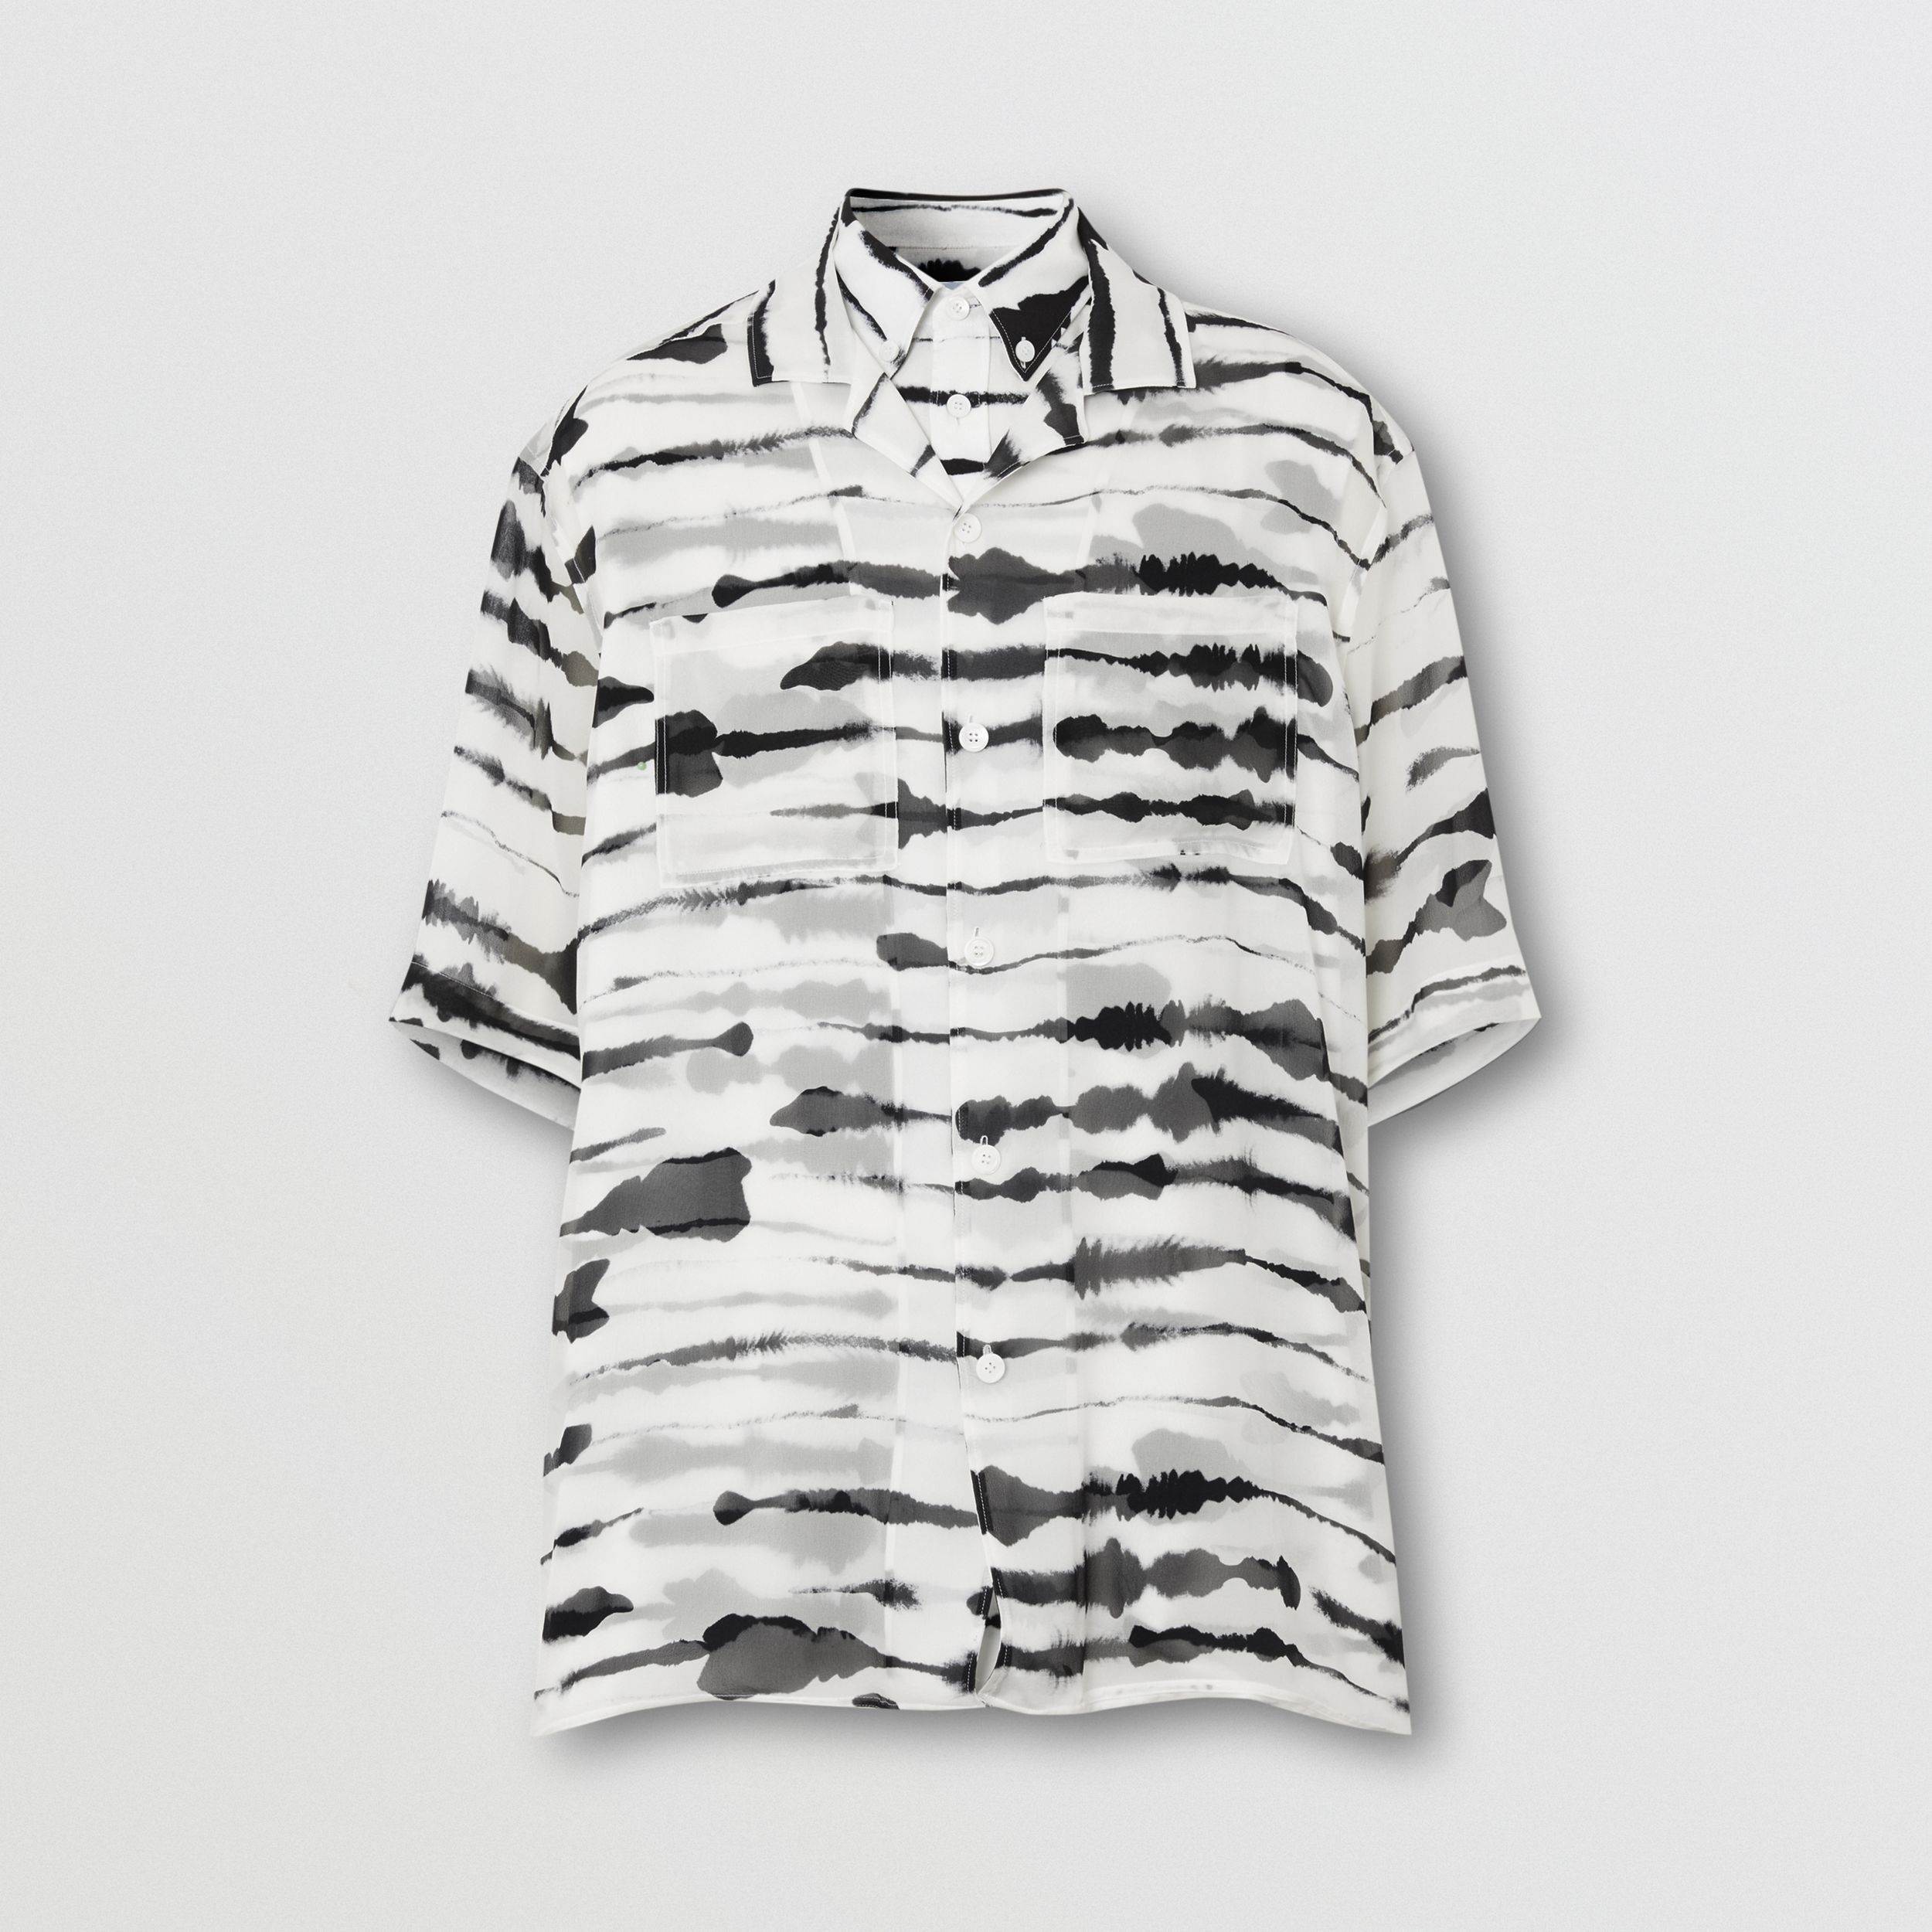 Short-sleeve Silk Overlay Watercolour Print Twill Shirt in Monochrome | Burberry - 4